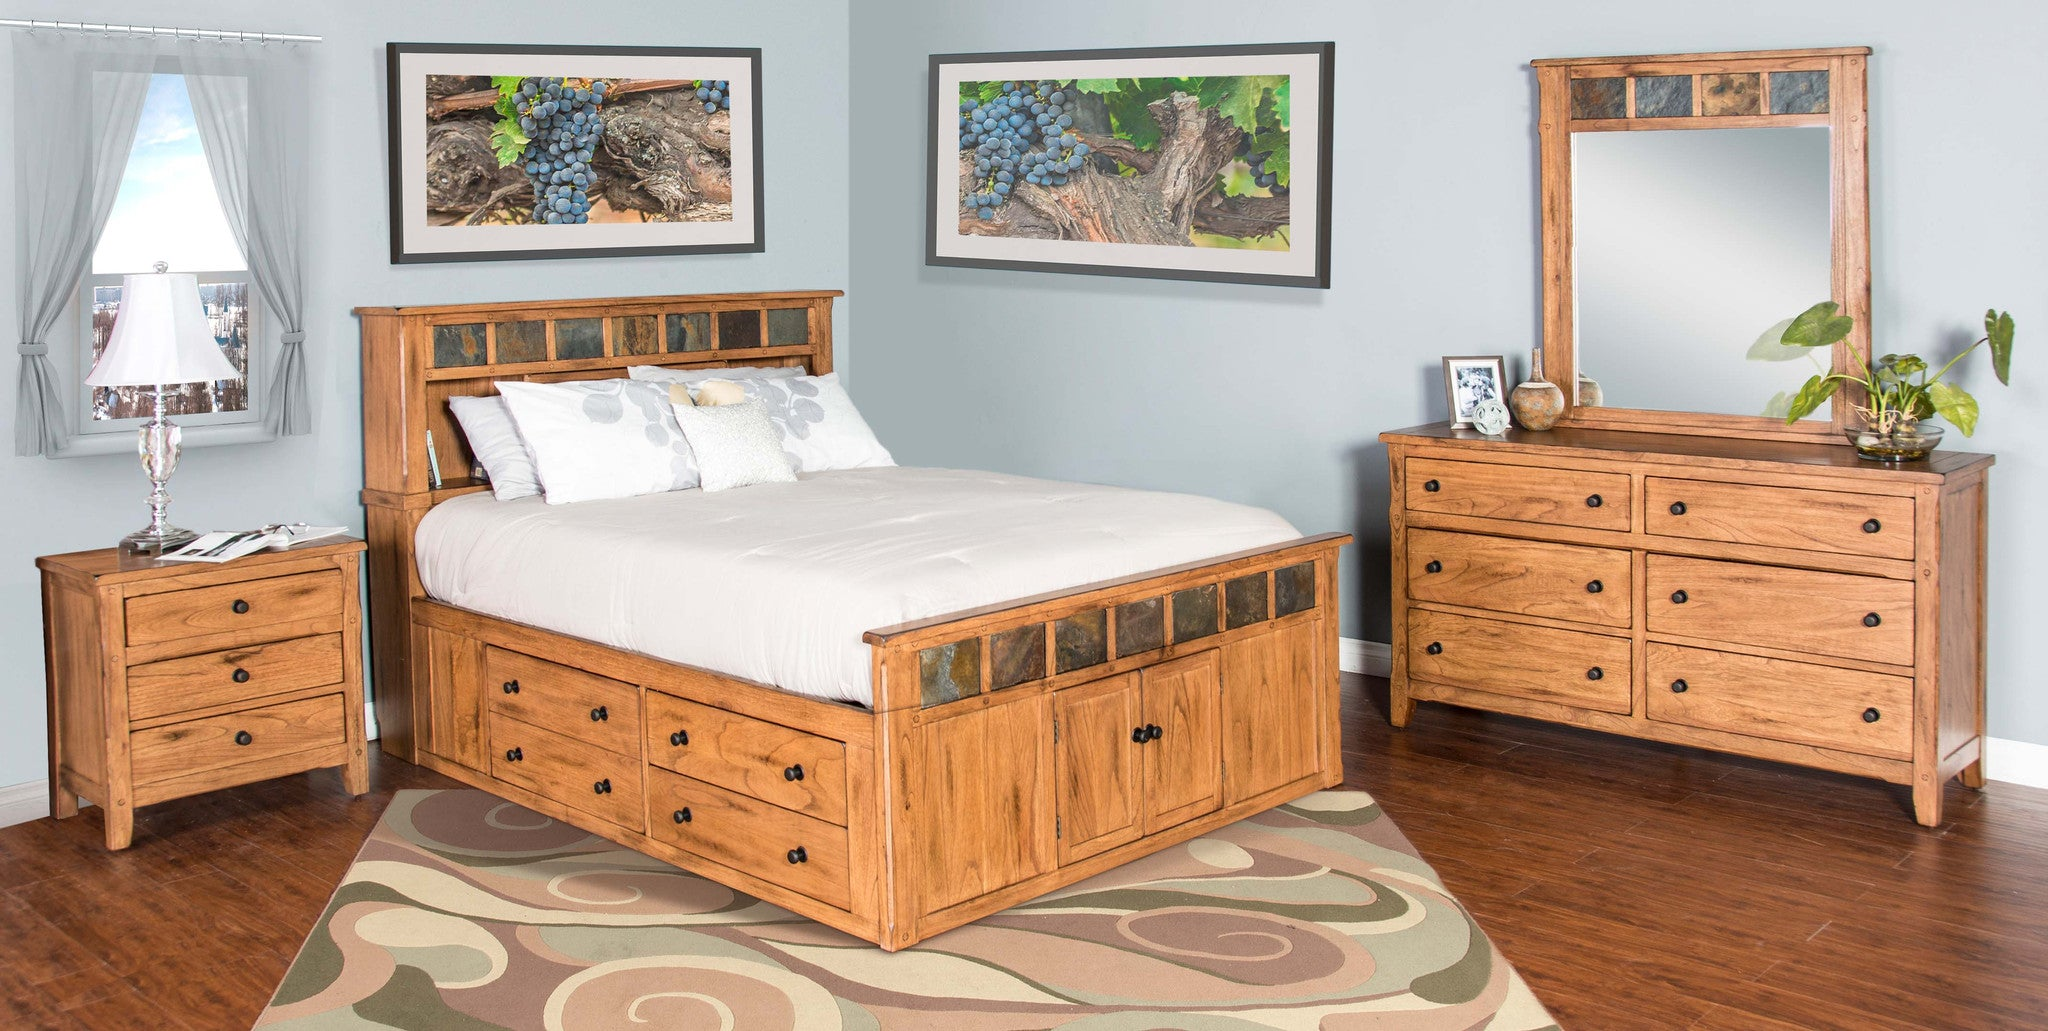 Sedona rustic petite storage bedroom suite e king size for Rustic bedroom furniture suites